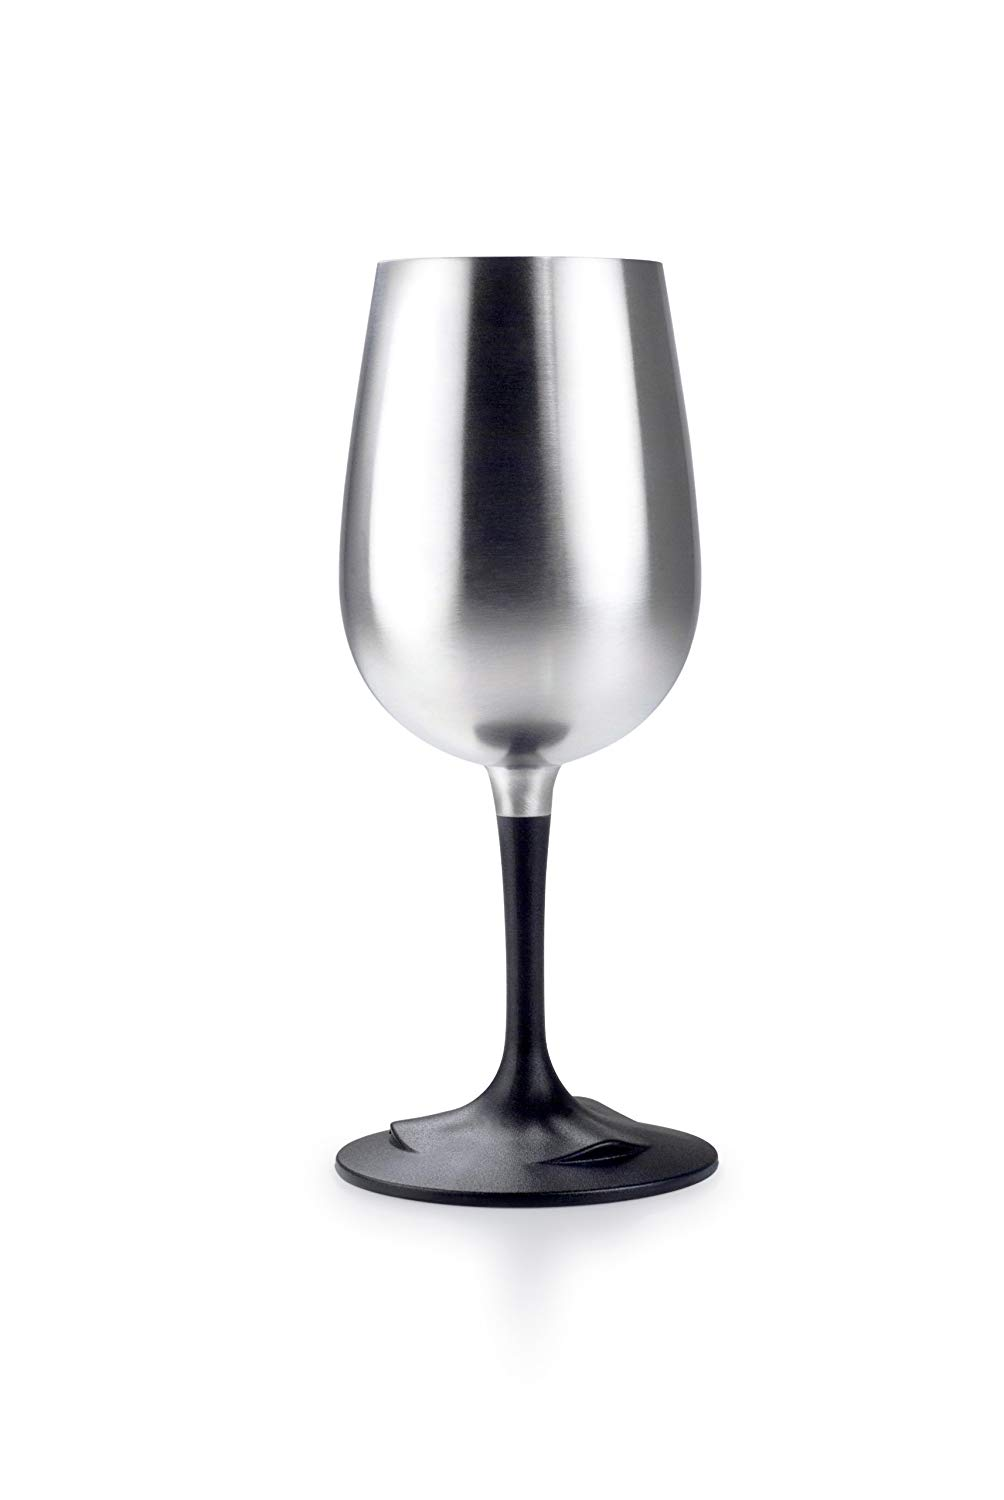 GSI(ジーエスアイ)/Stainless Nesting Wine Glass